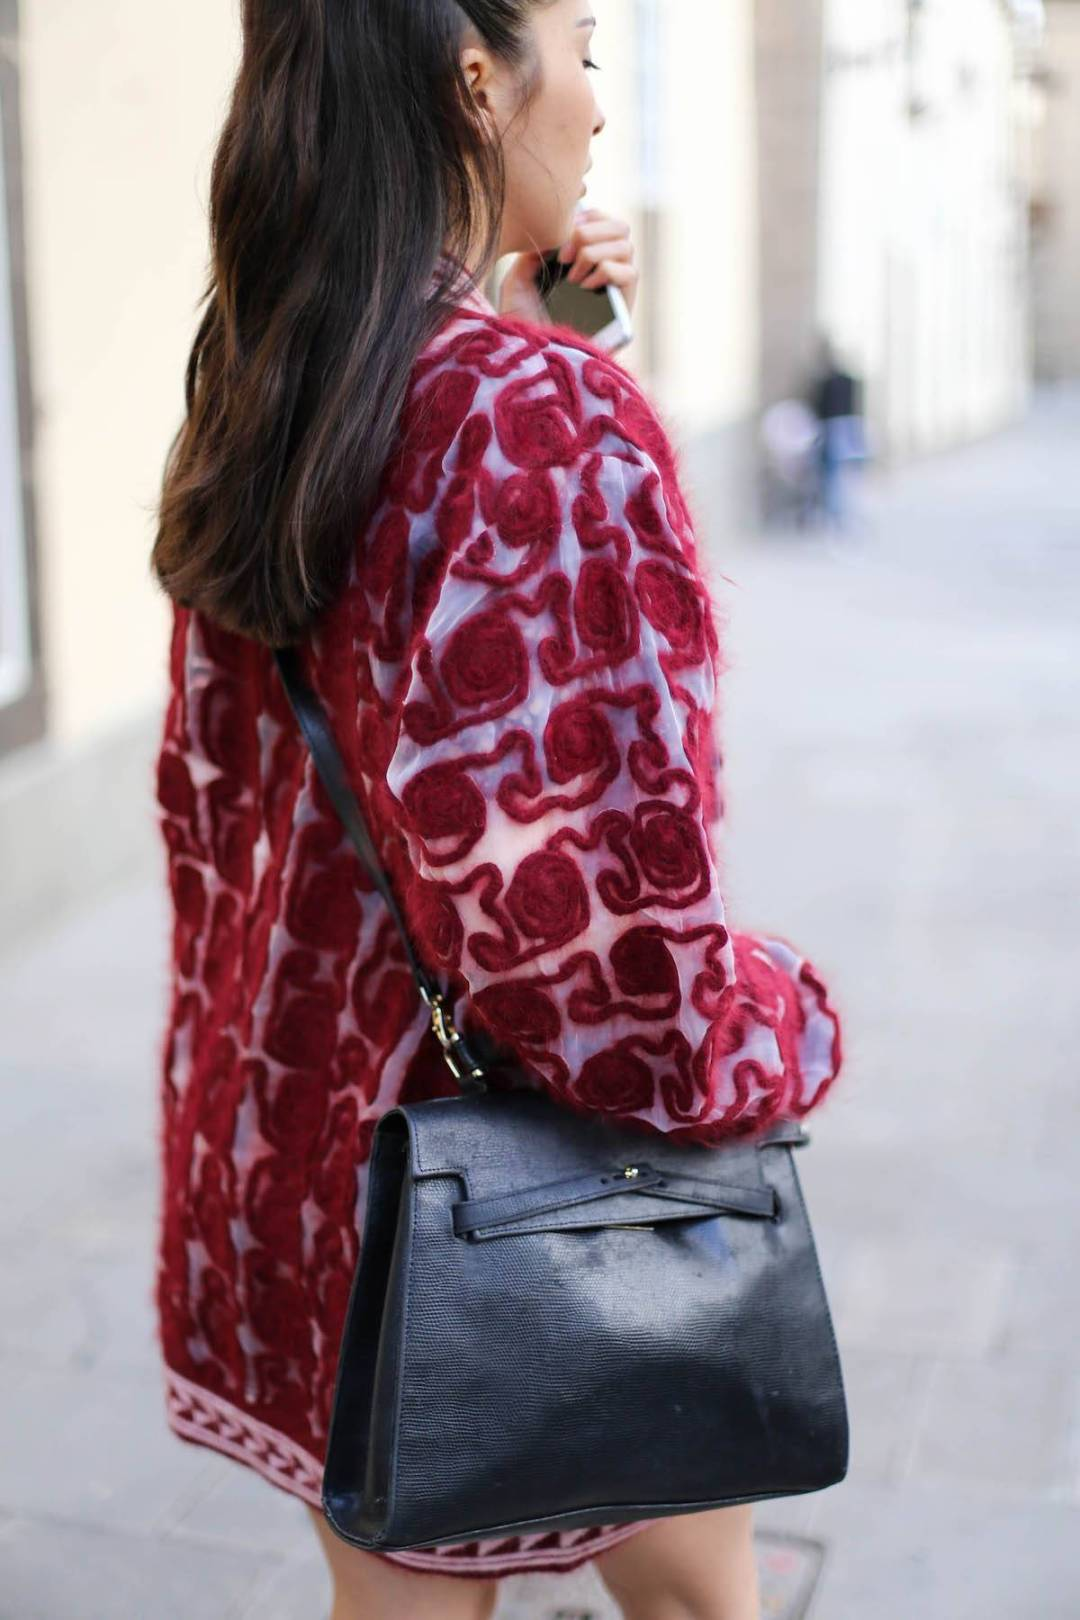 The Patterned Summer Coat 1